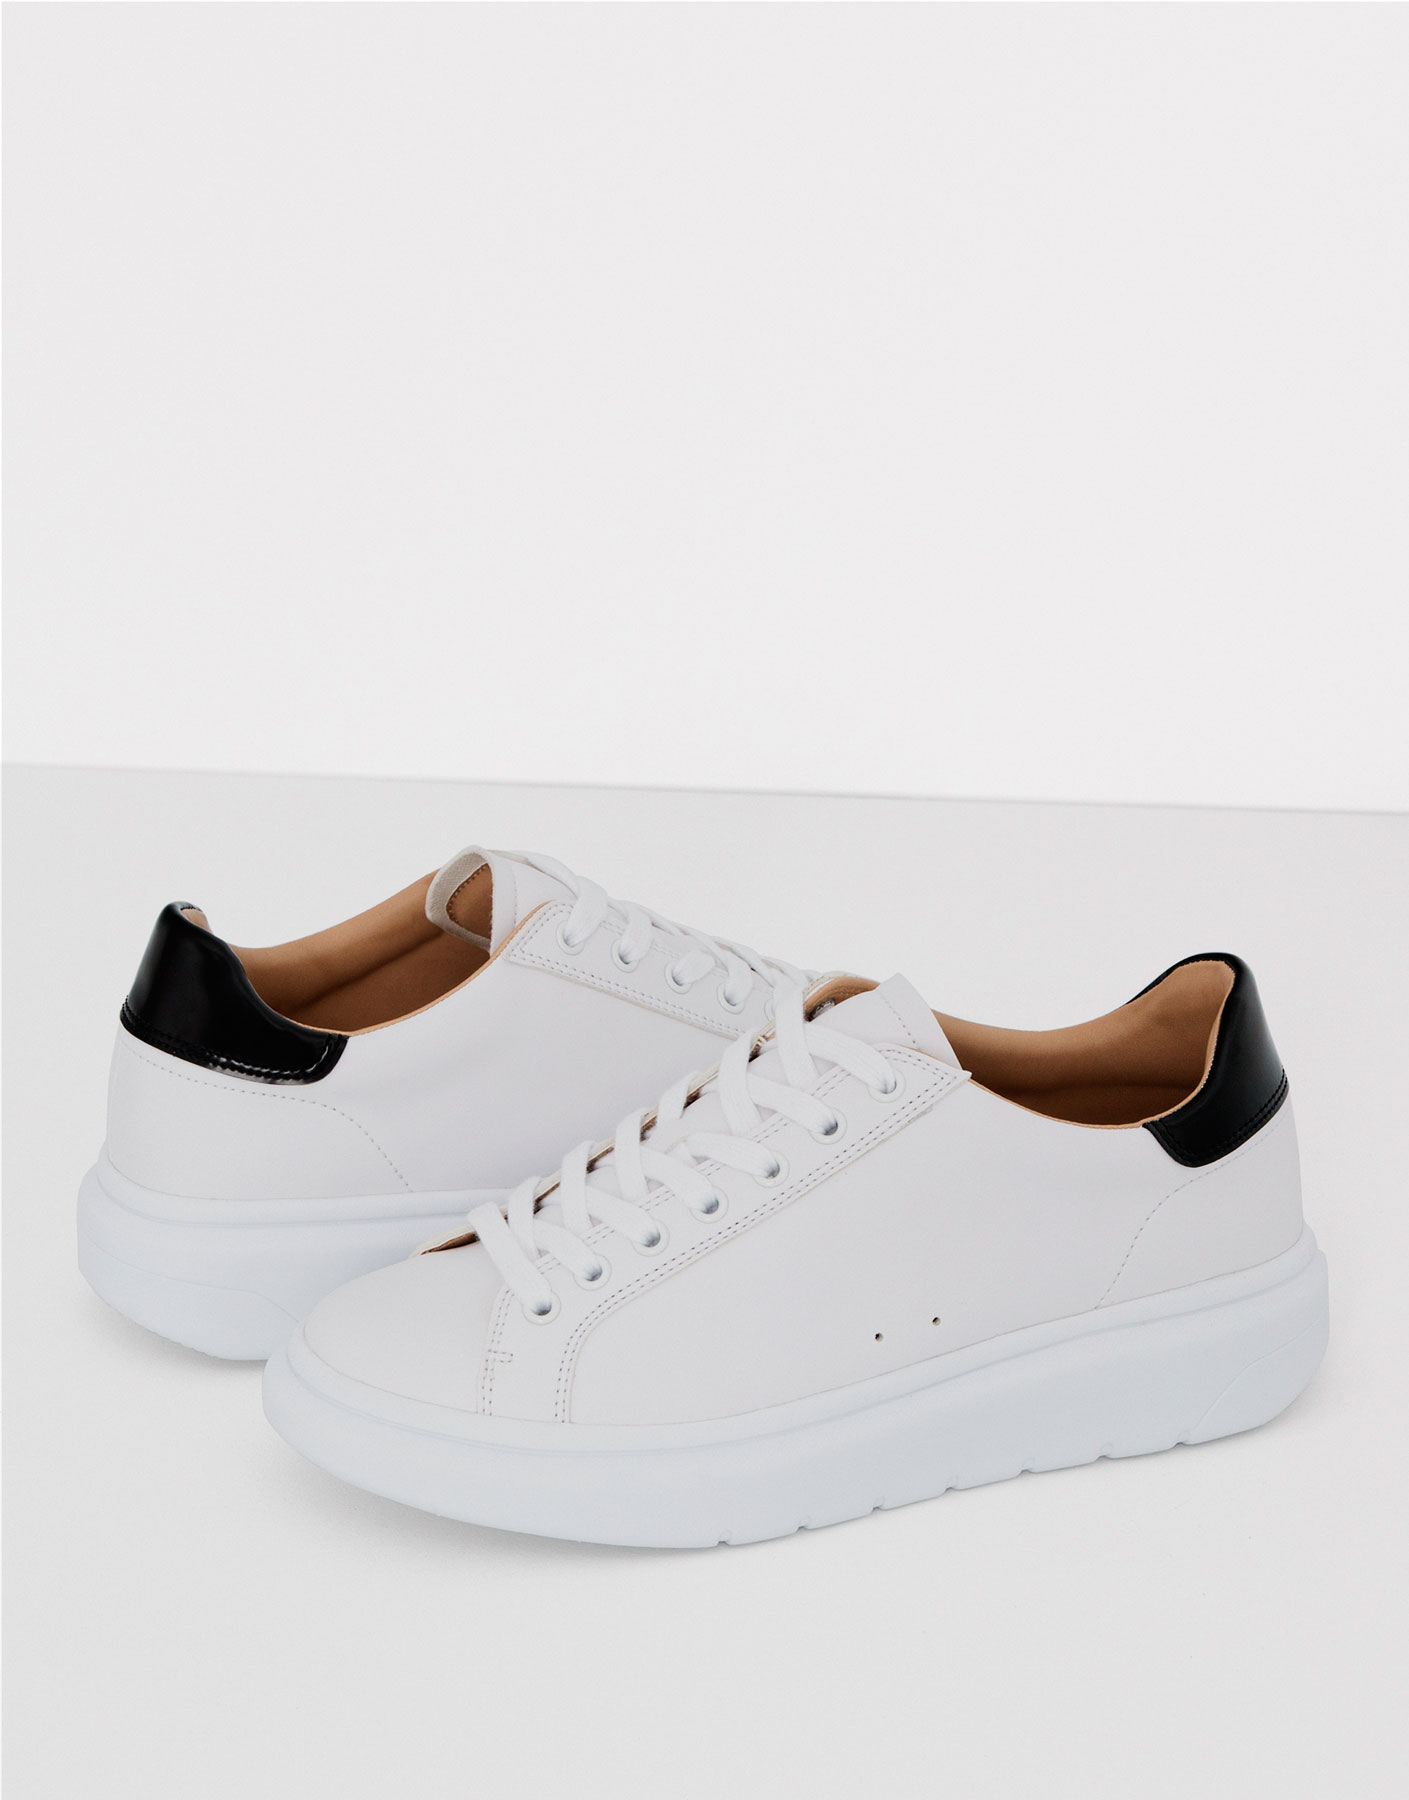 Fashion plimsolls